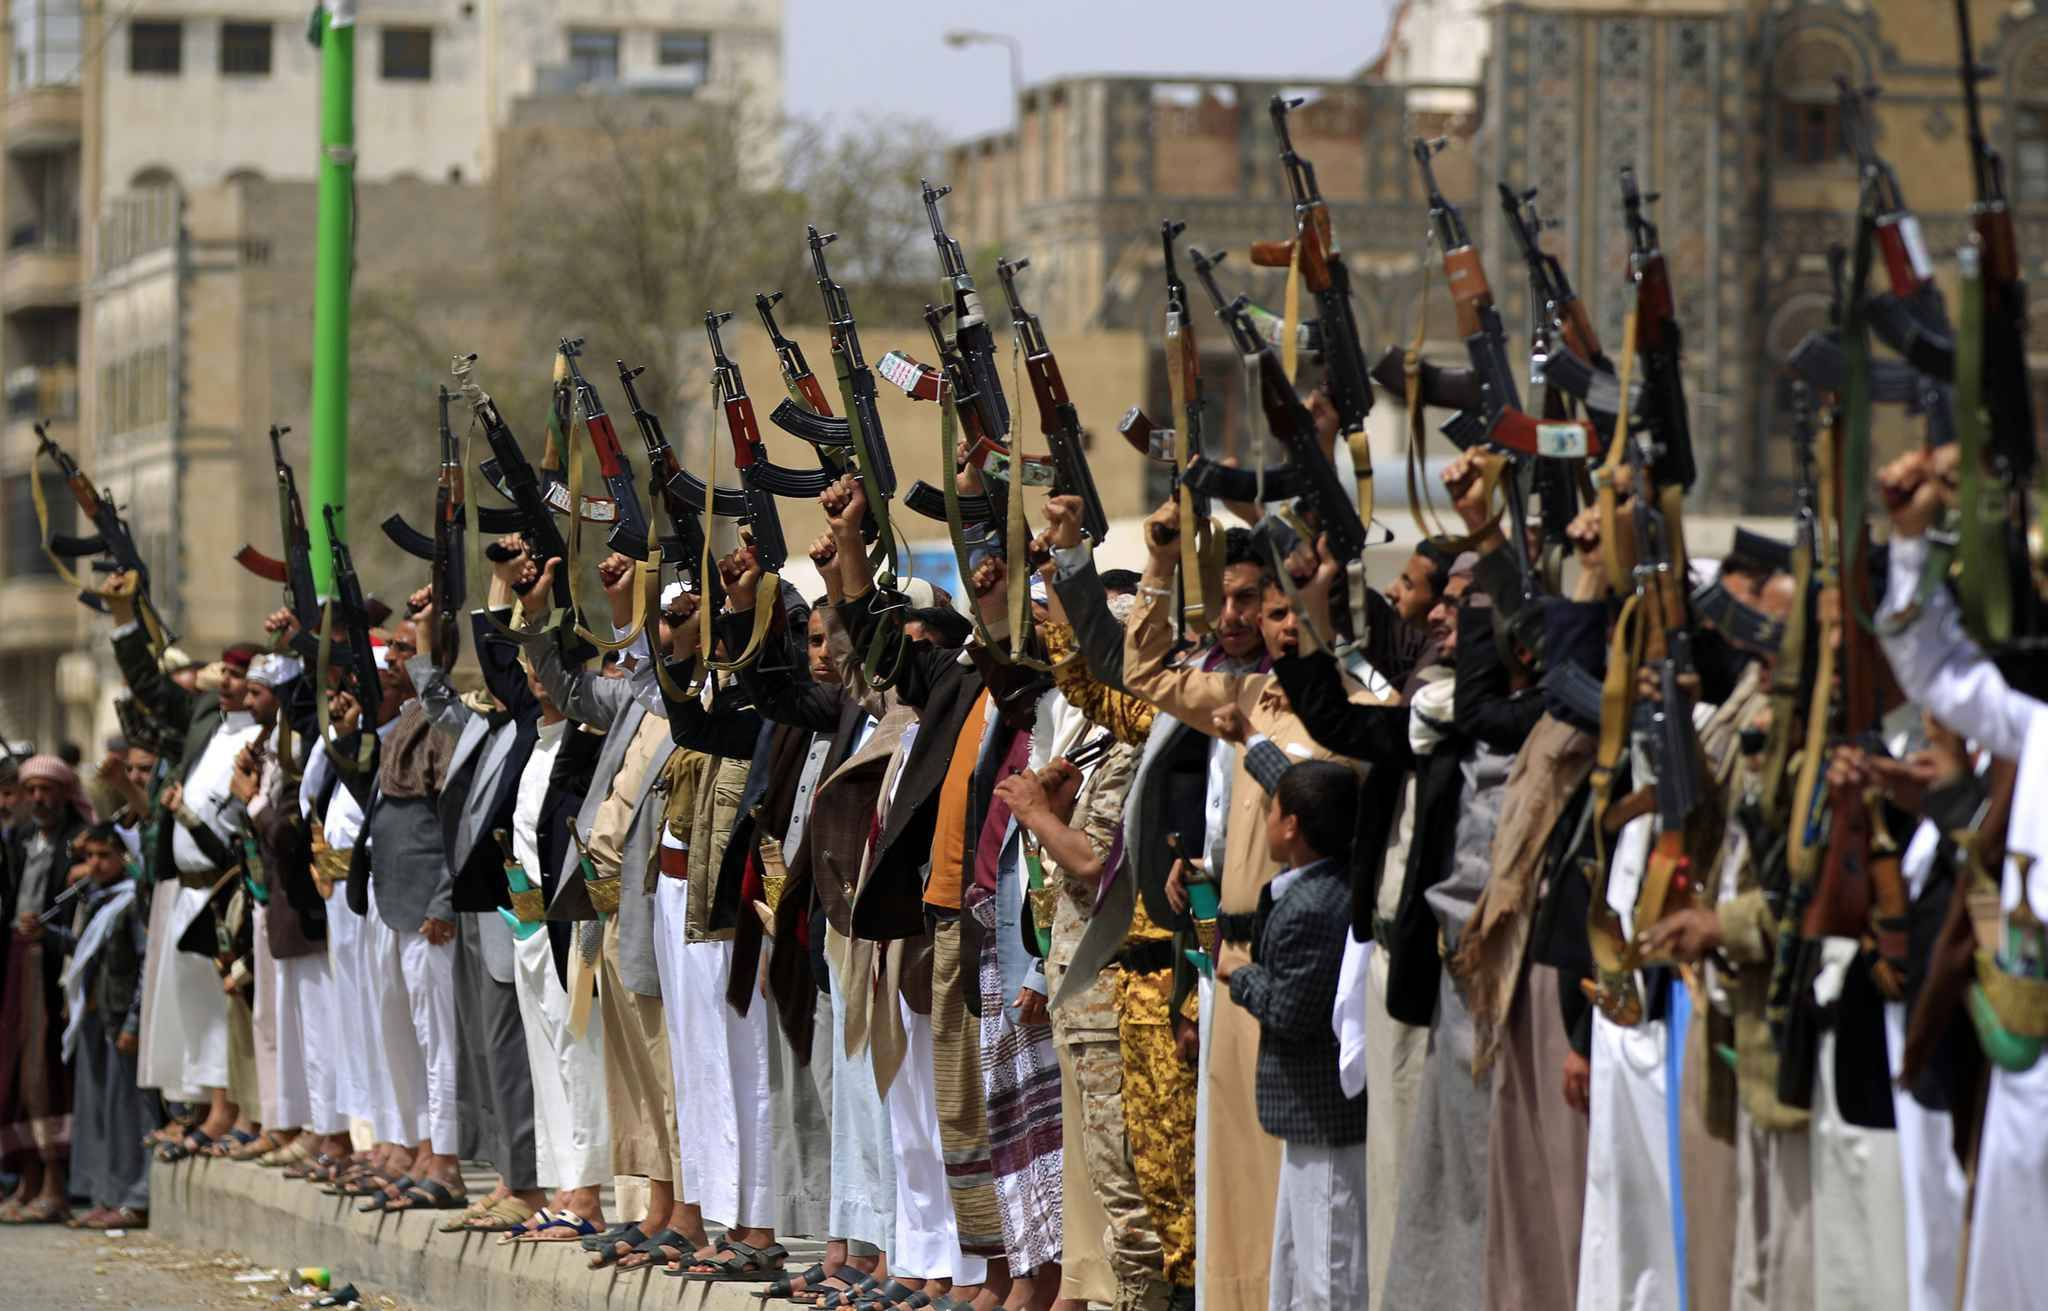 Supporters of the Shiite Yemeni Huthis demonstrate in the capital Sanaa on 25 June 2018, in support of fellow Huthis engaged in battles against the coalition forces led by the UAE and Saudi Arabia in Red Sea port city of Hudeida.